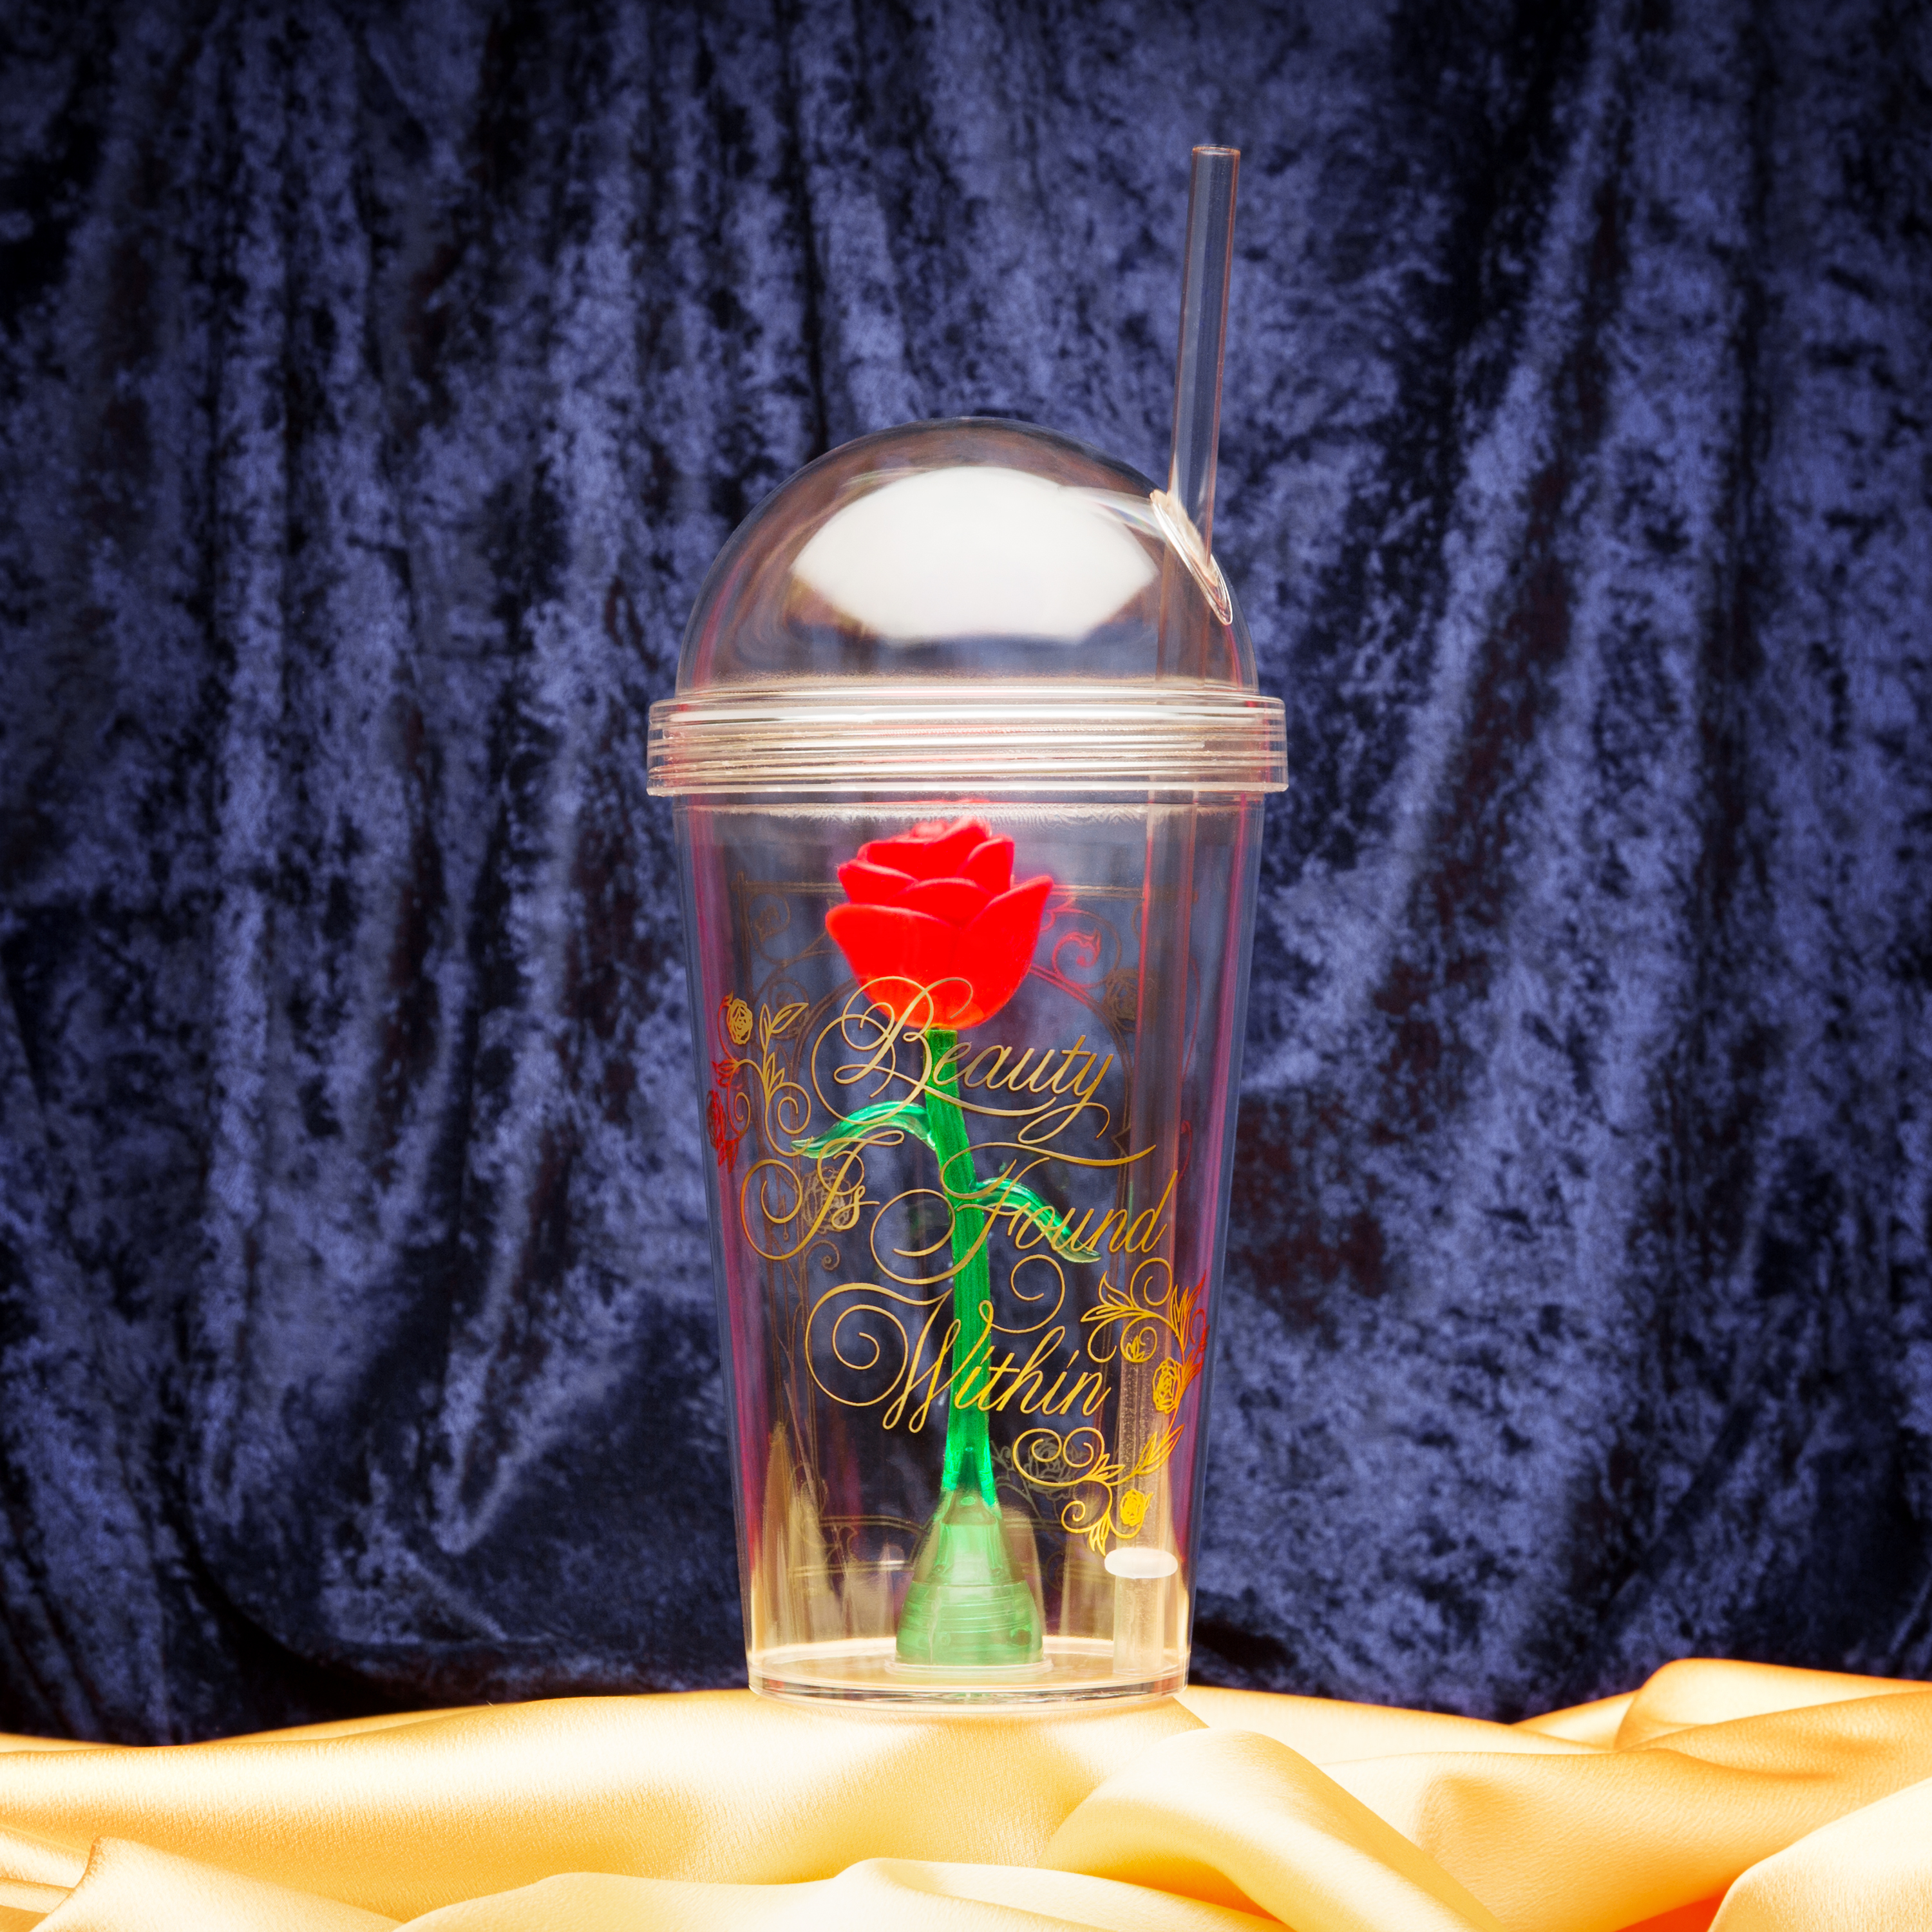 Beauty And The Beast 22 ounce Kid's Tumbler, Enchanted Rose slideshow image 2